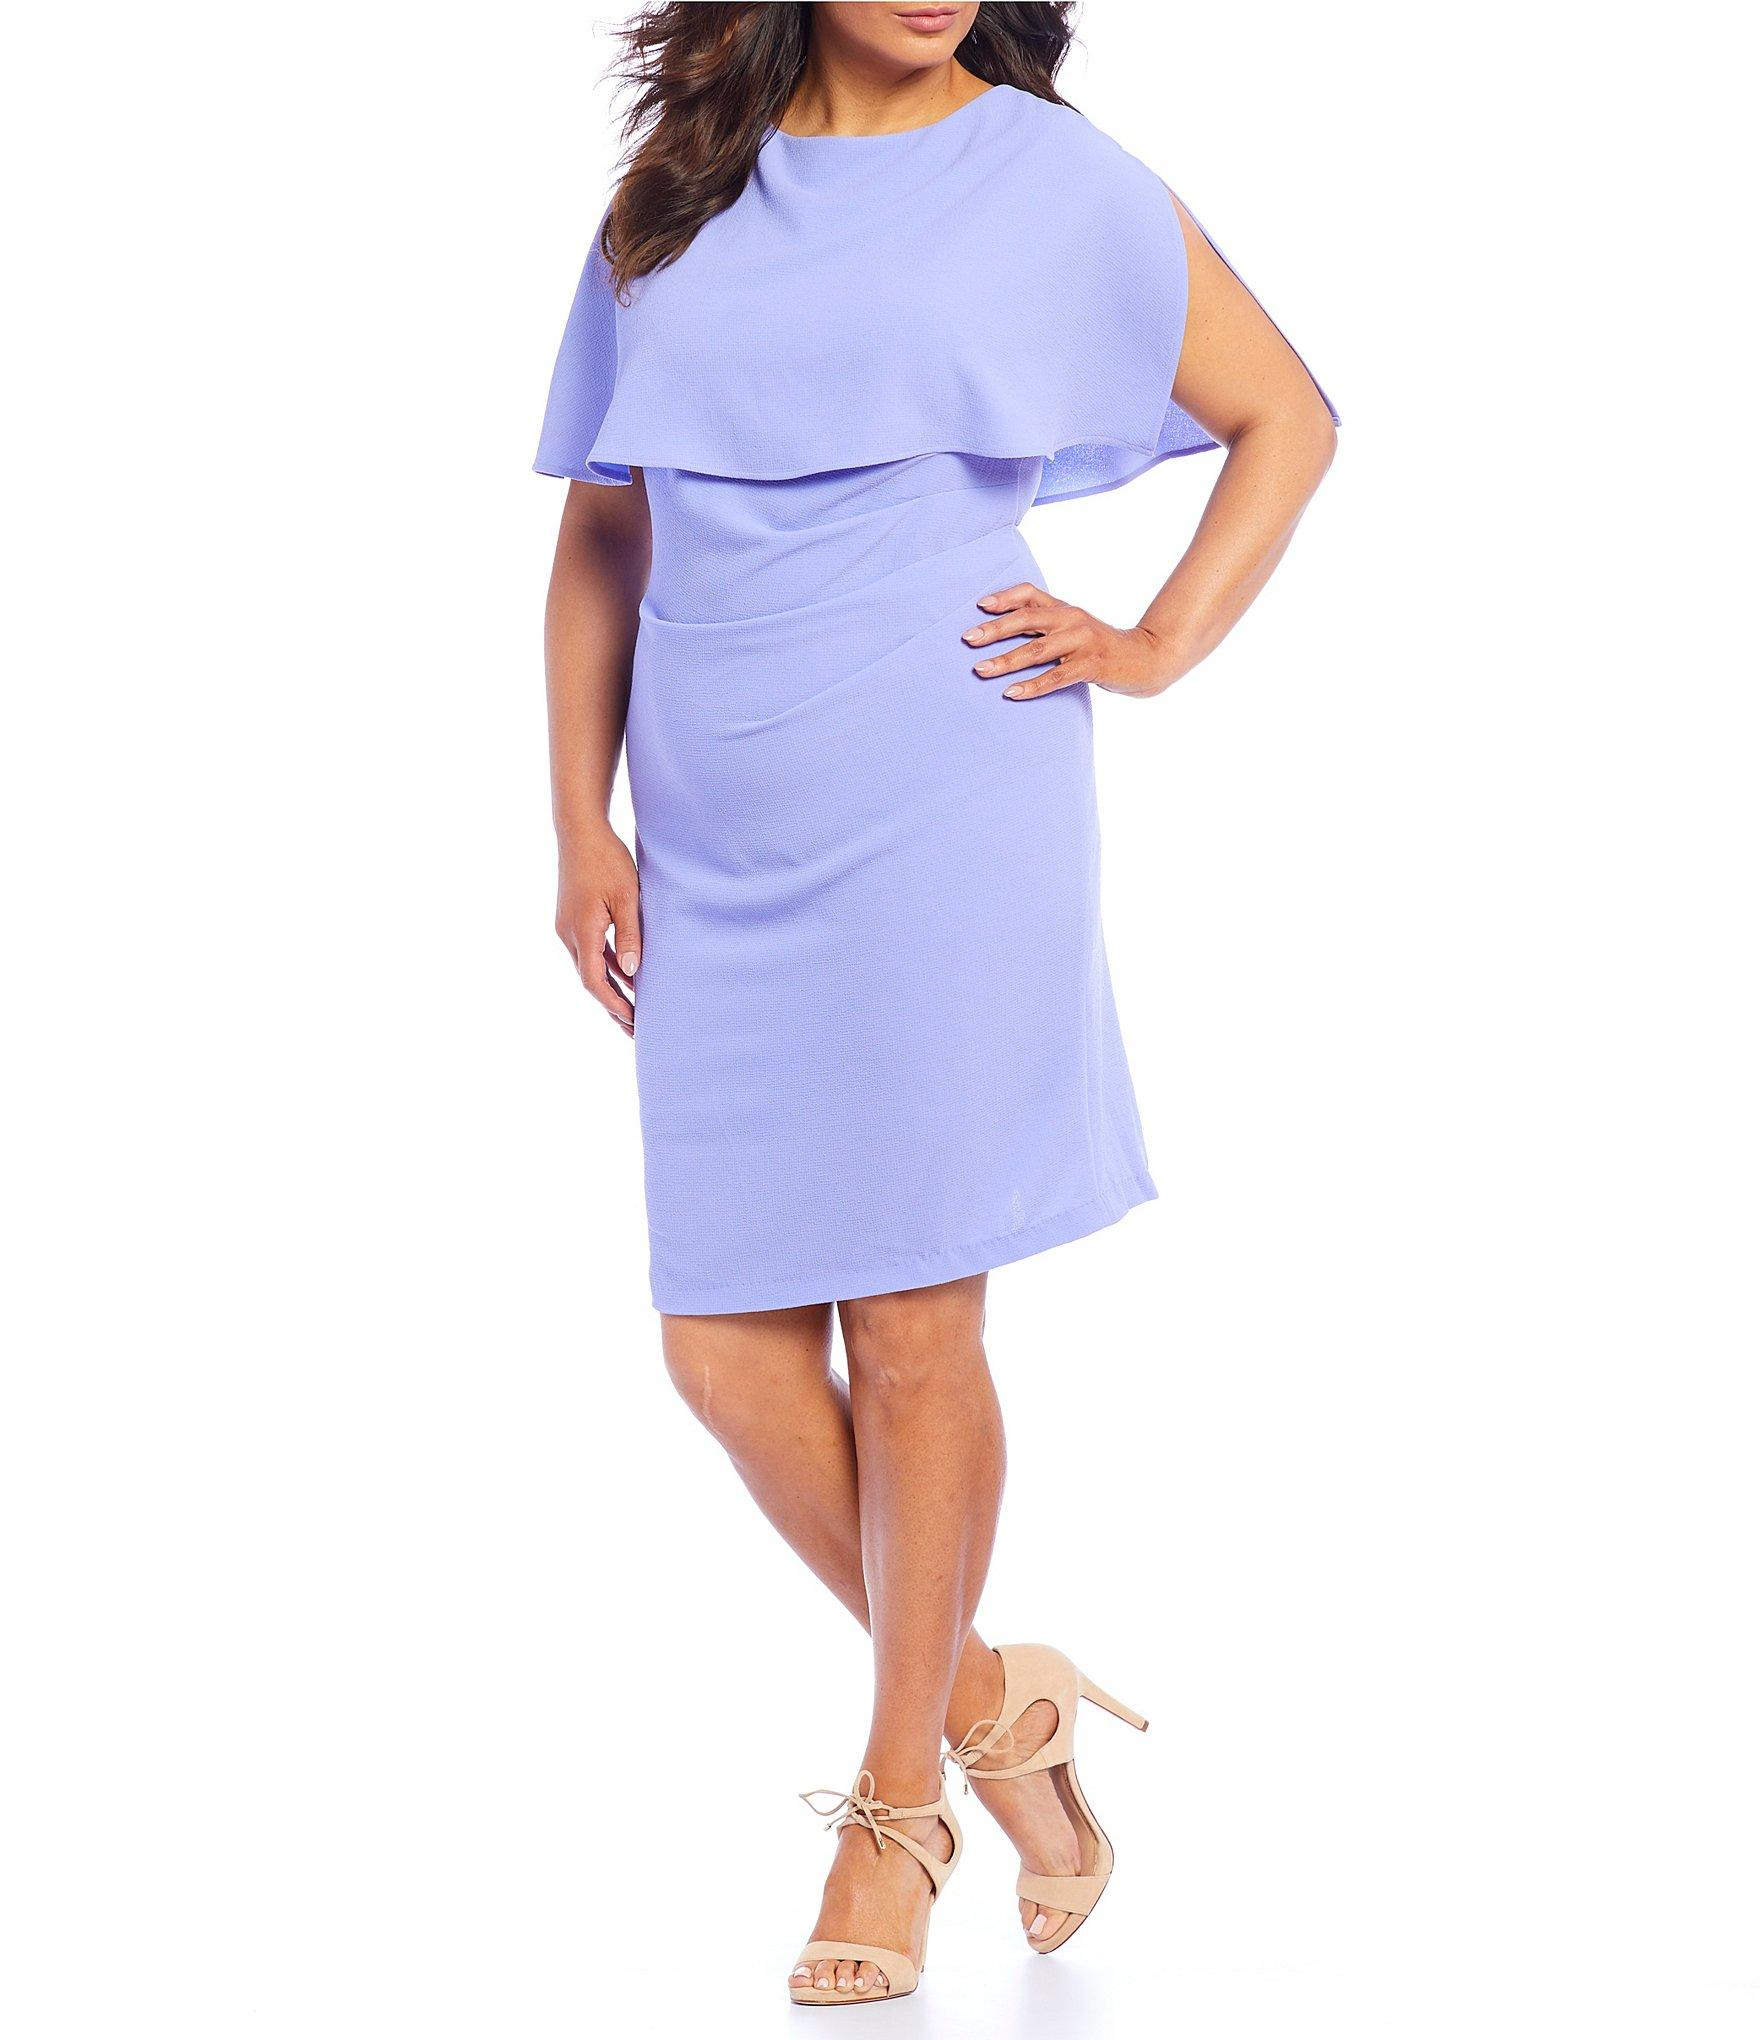 584417fb783 Lyst - Adrianna Papell Plus Size Boat Neck Cape Sheath Dress in Blue